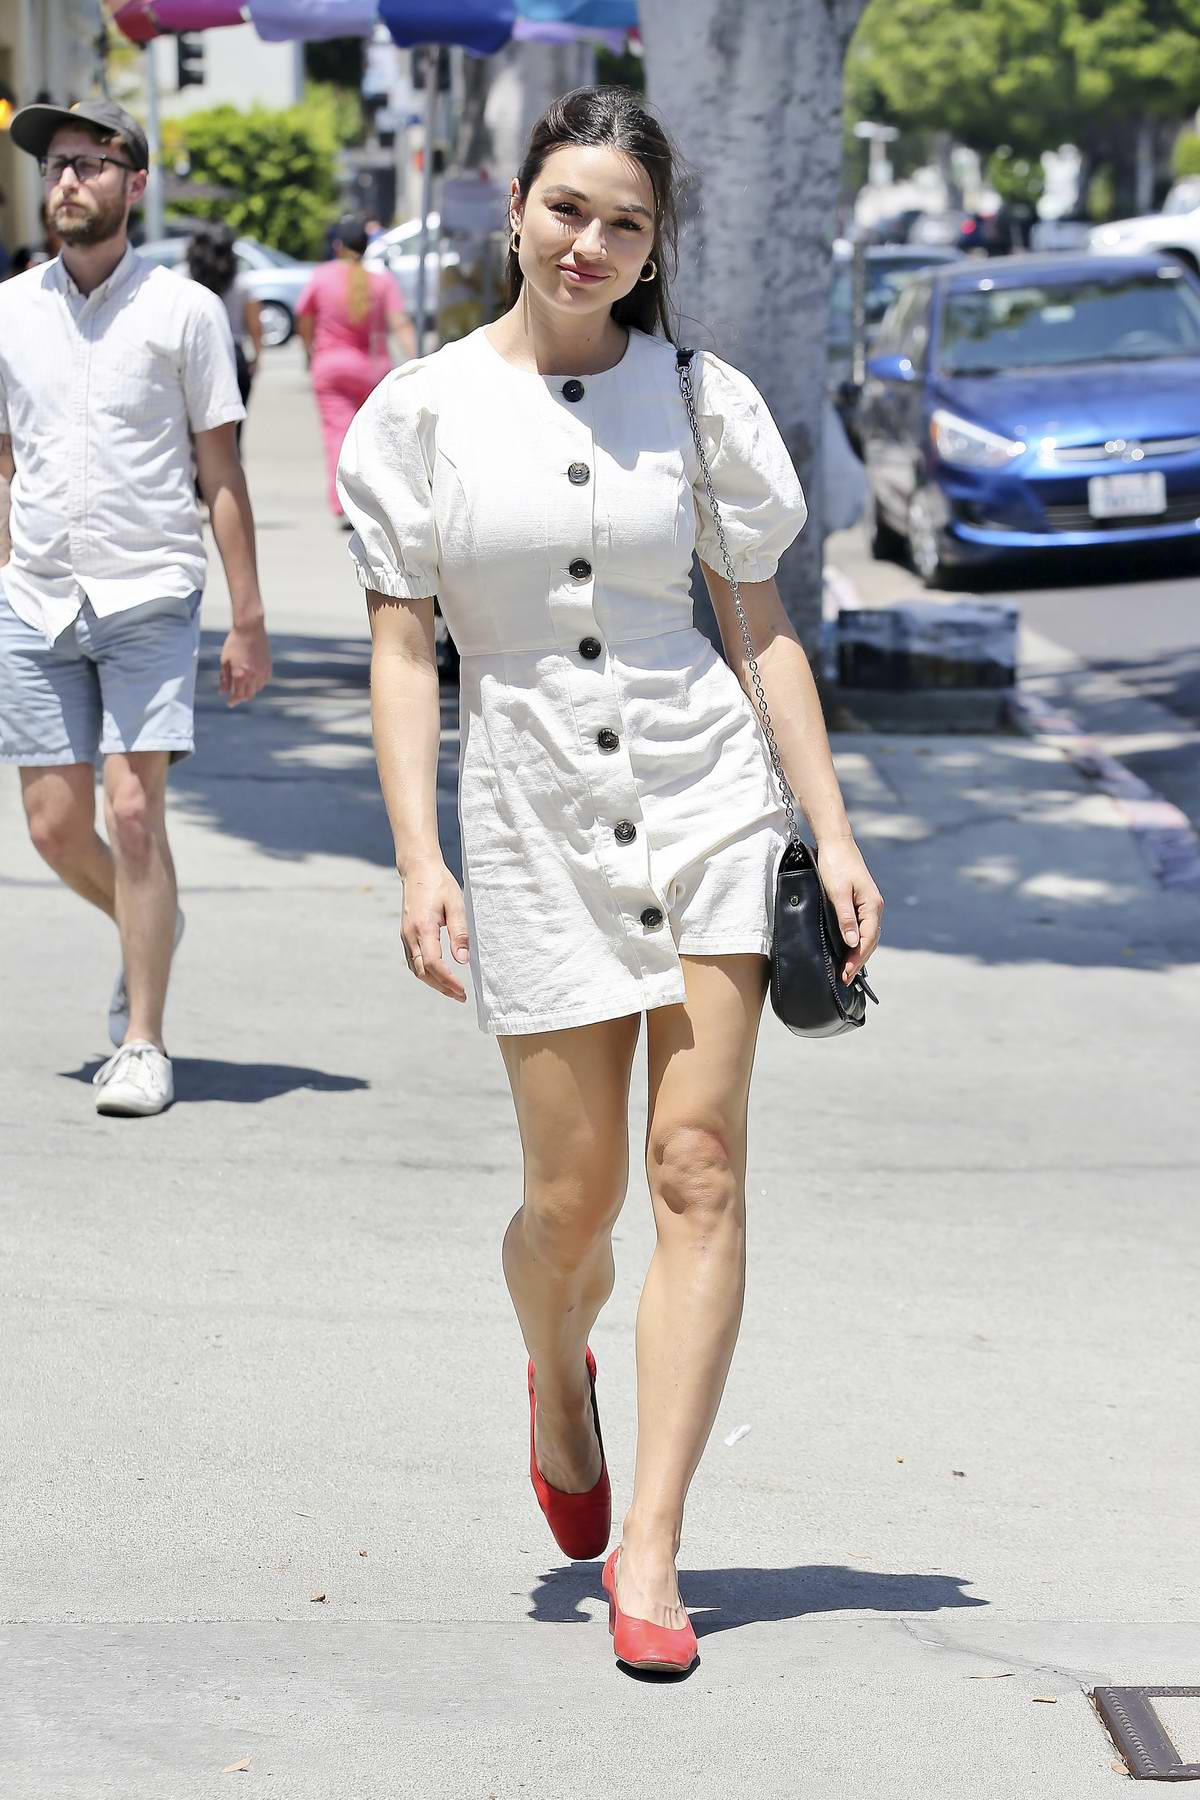 Crystal Reed seen in a white mini dress while out shopping in Los Angeles